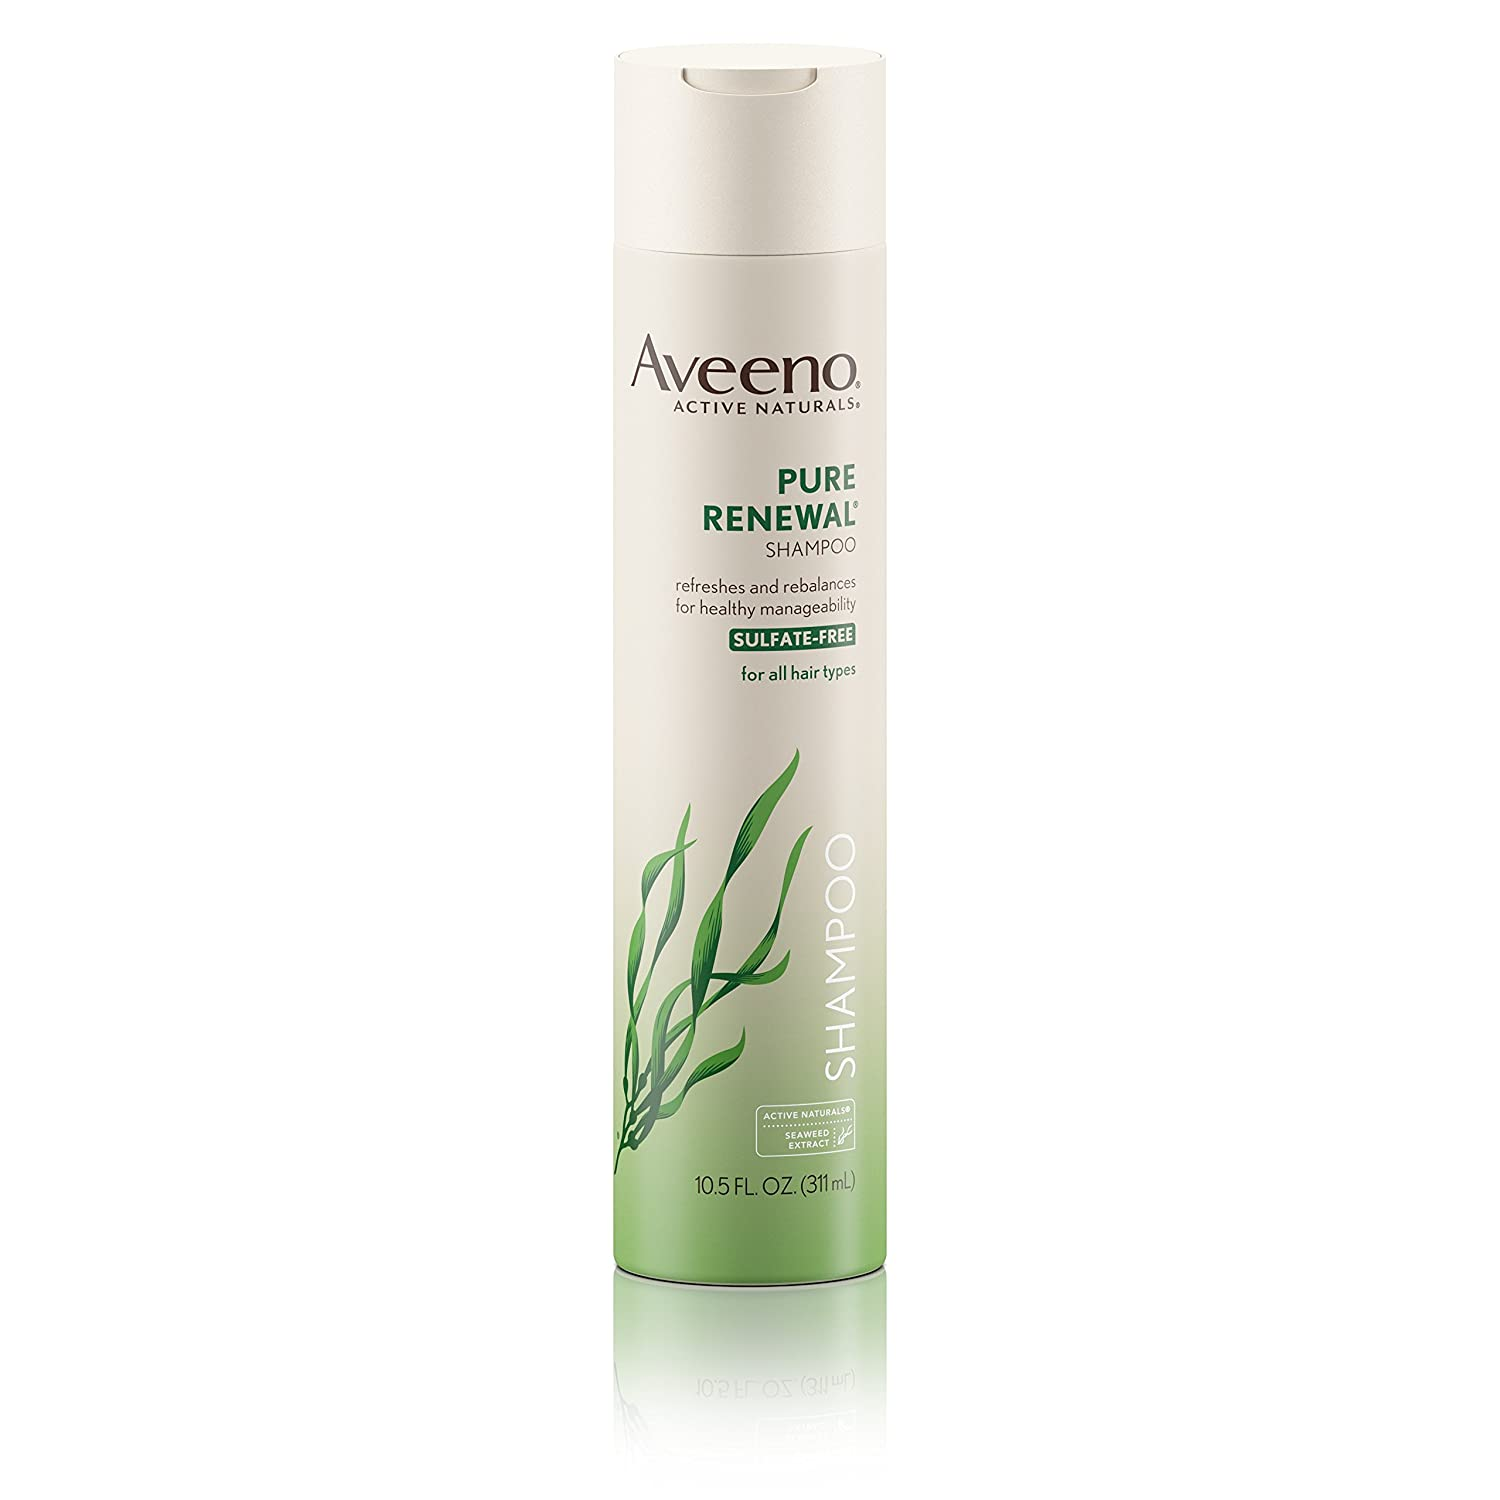 Aveeno Shampoo Pure Renewal (Sulfate-Free) 10.5 Ounce (310ml) (6 Pack)